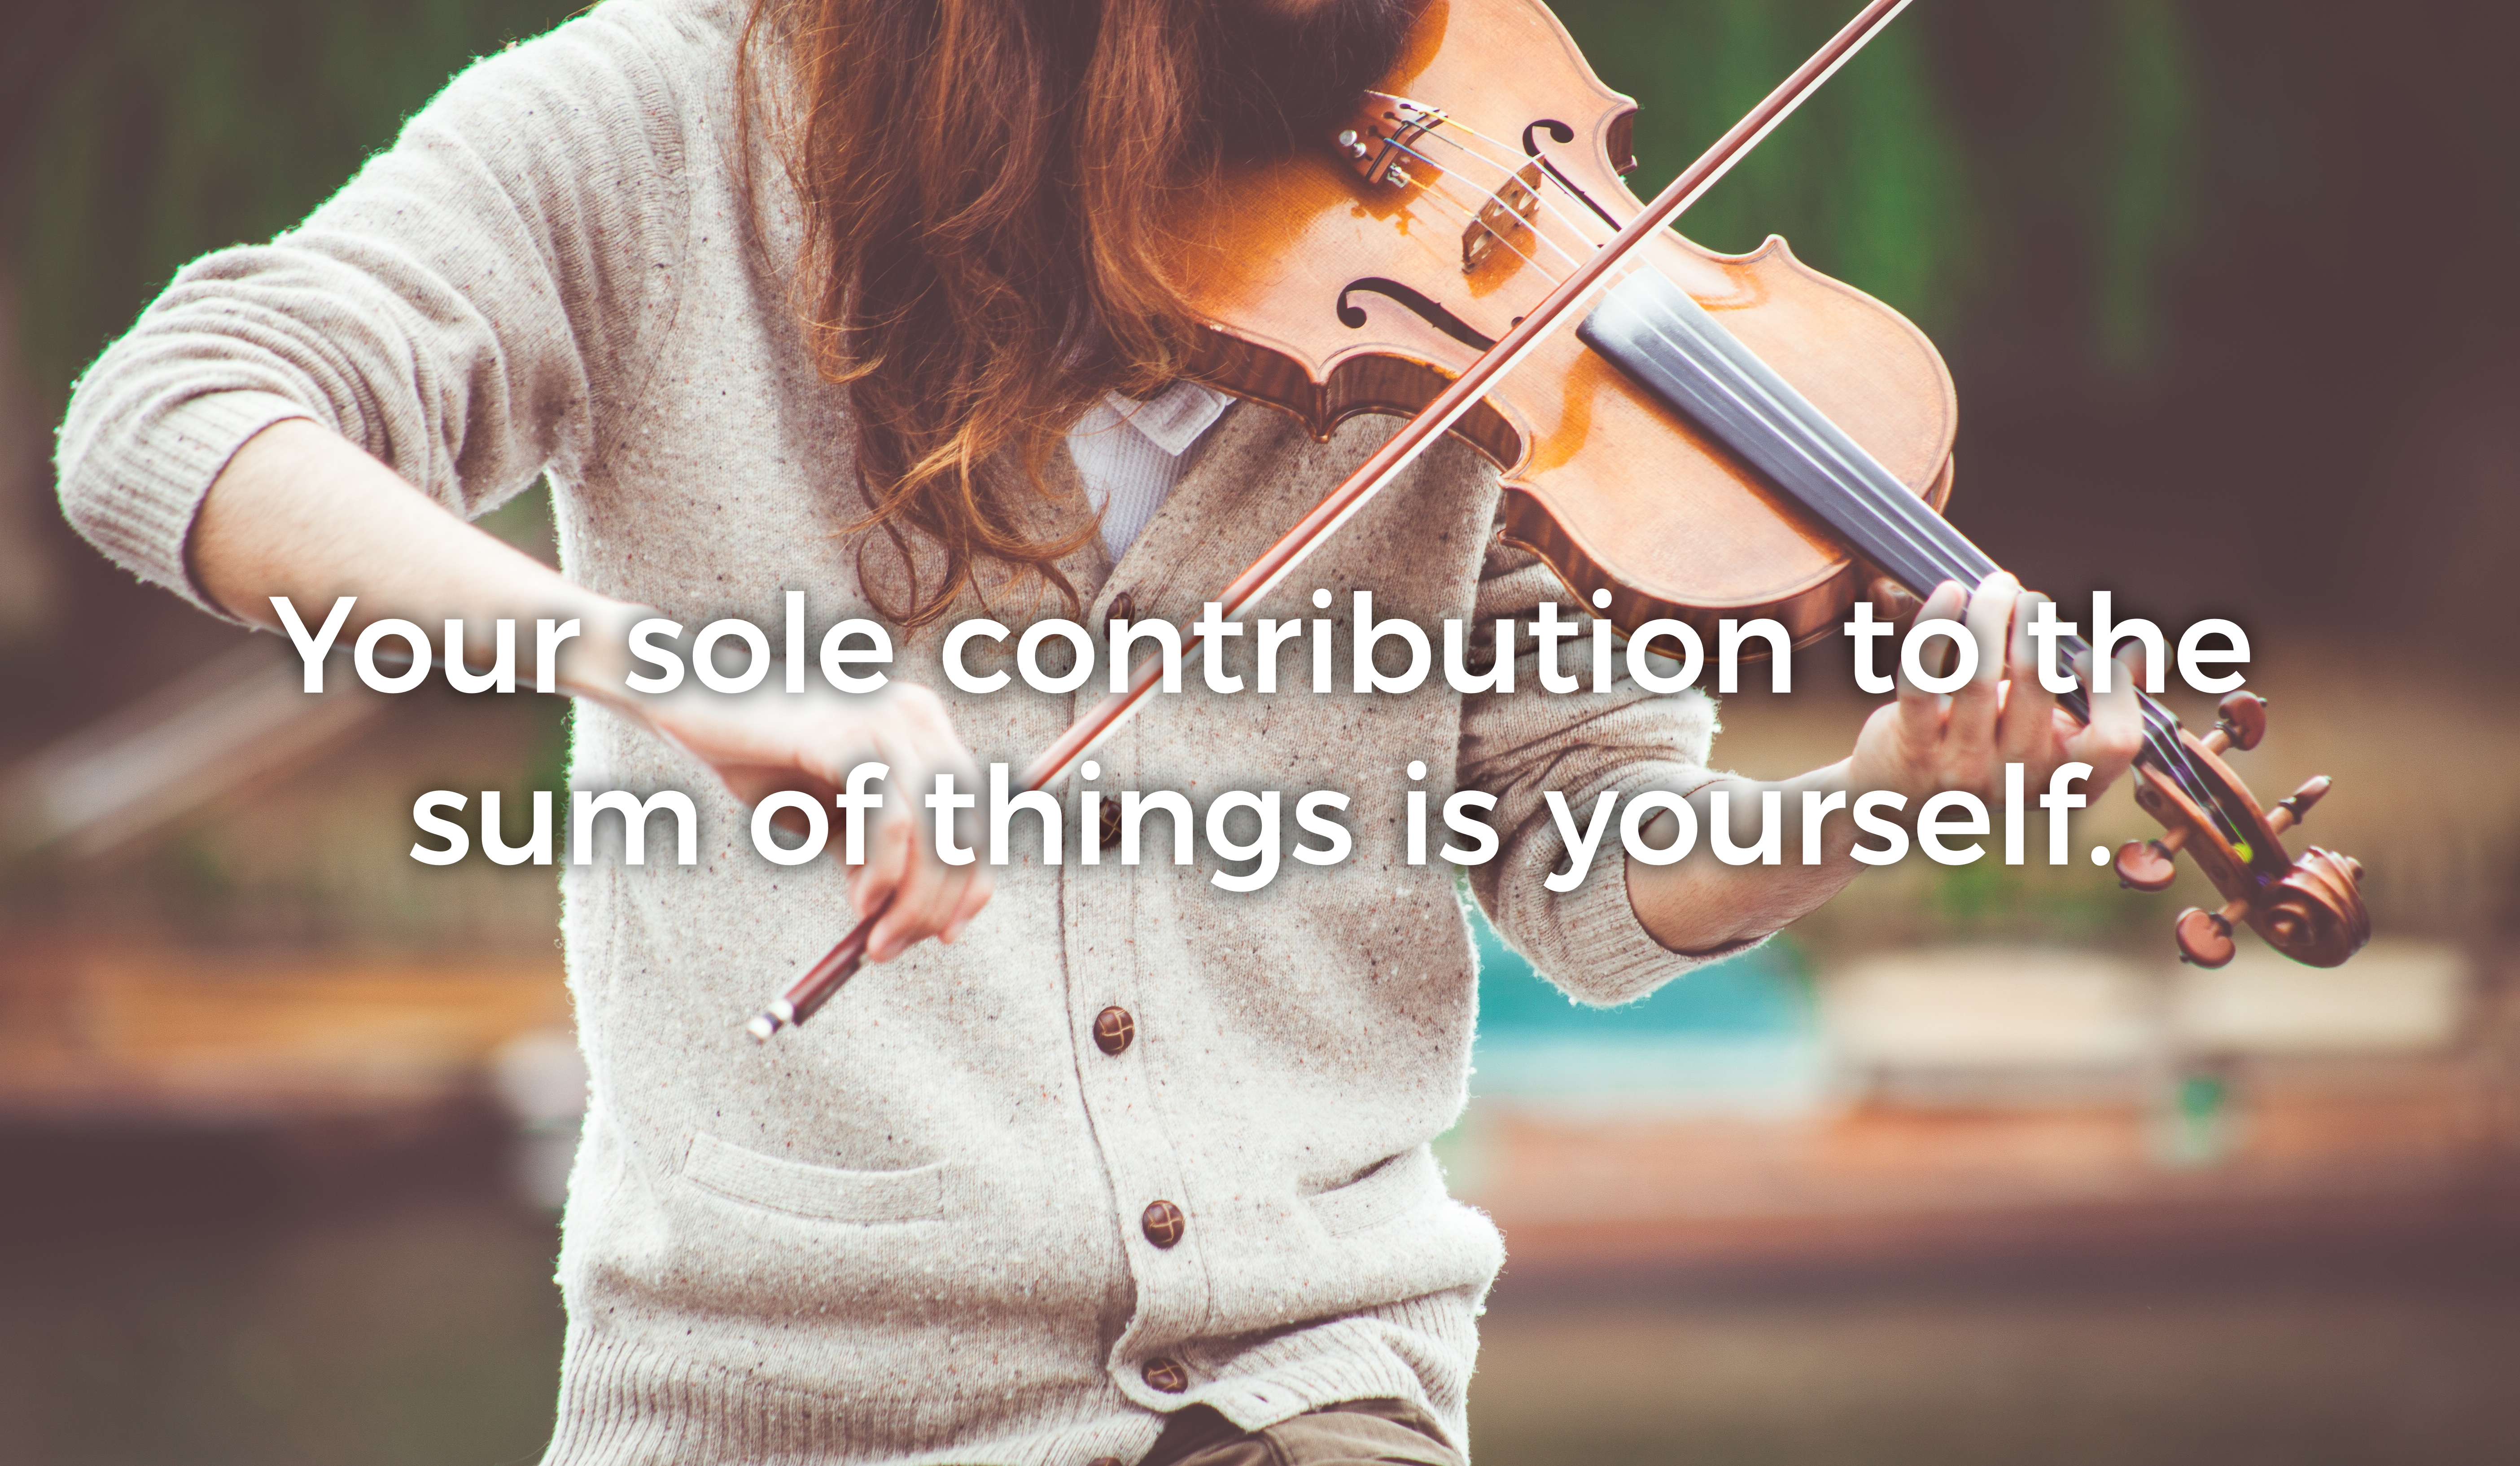 Your sole contribution to the sum of things is yourself. - Quote over image of woman playing violin